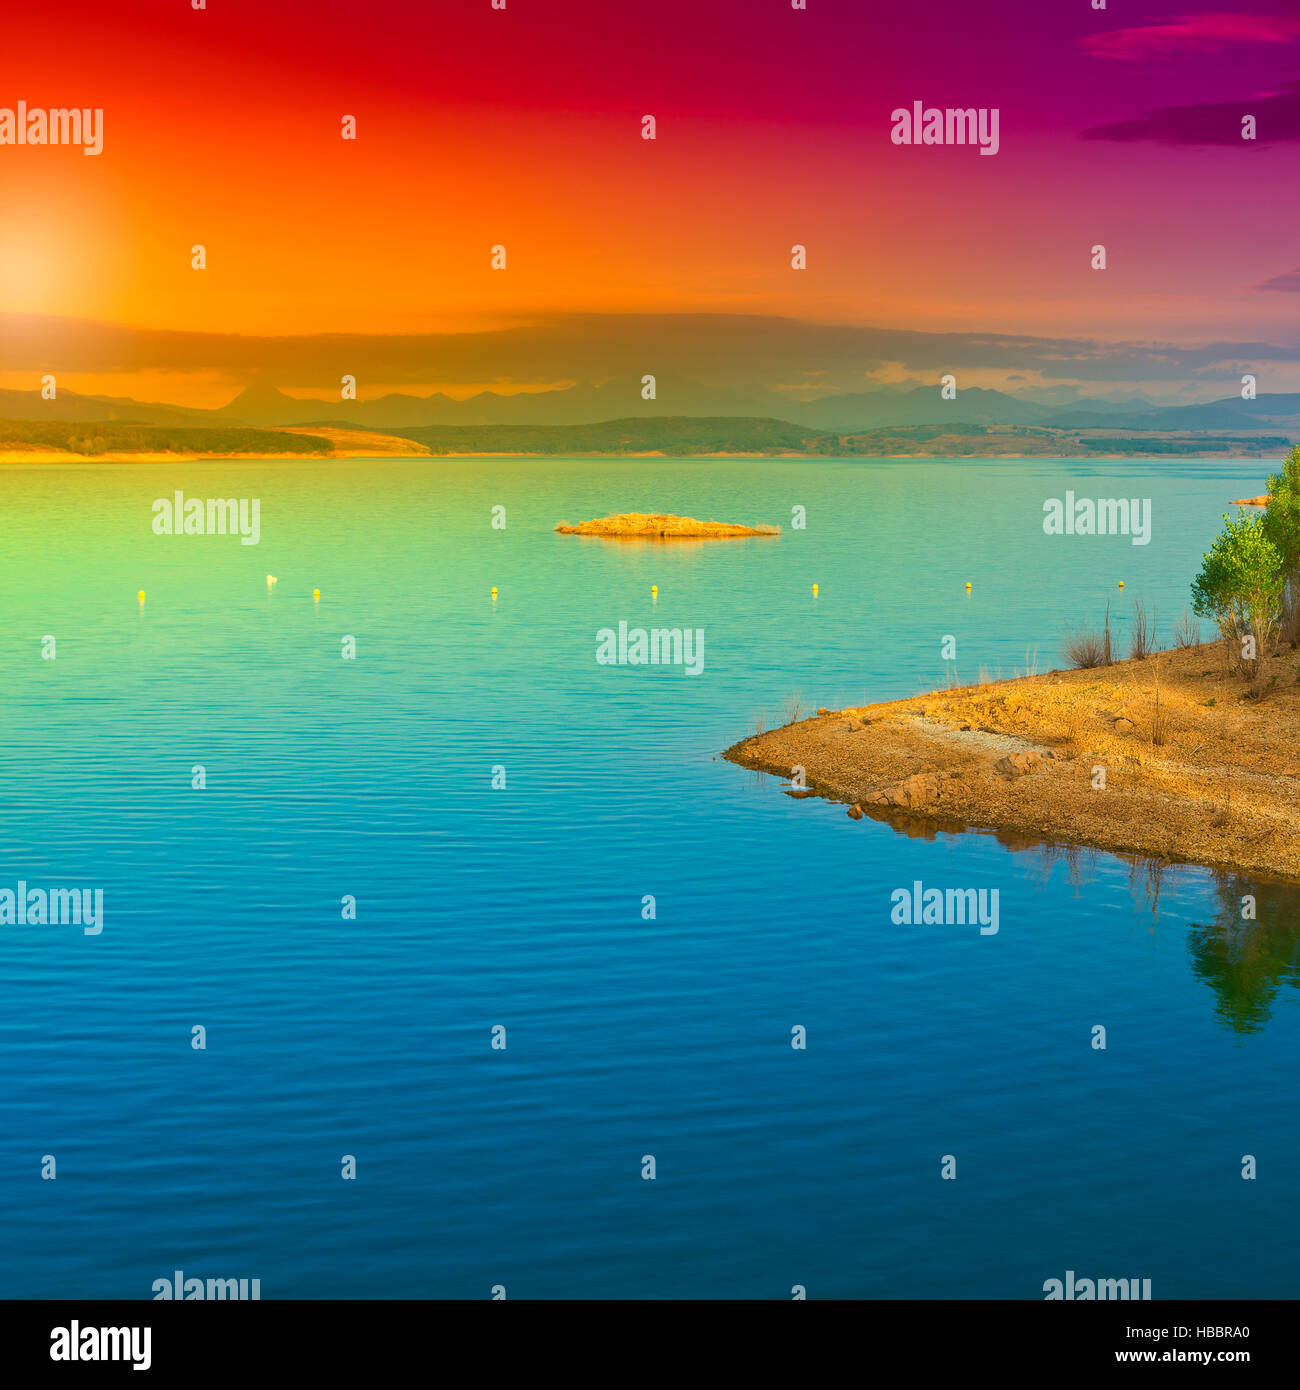 Lake in Spain - Stock Image